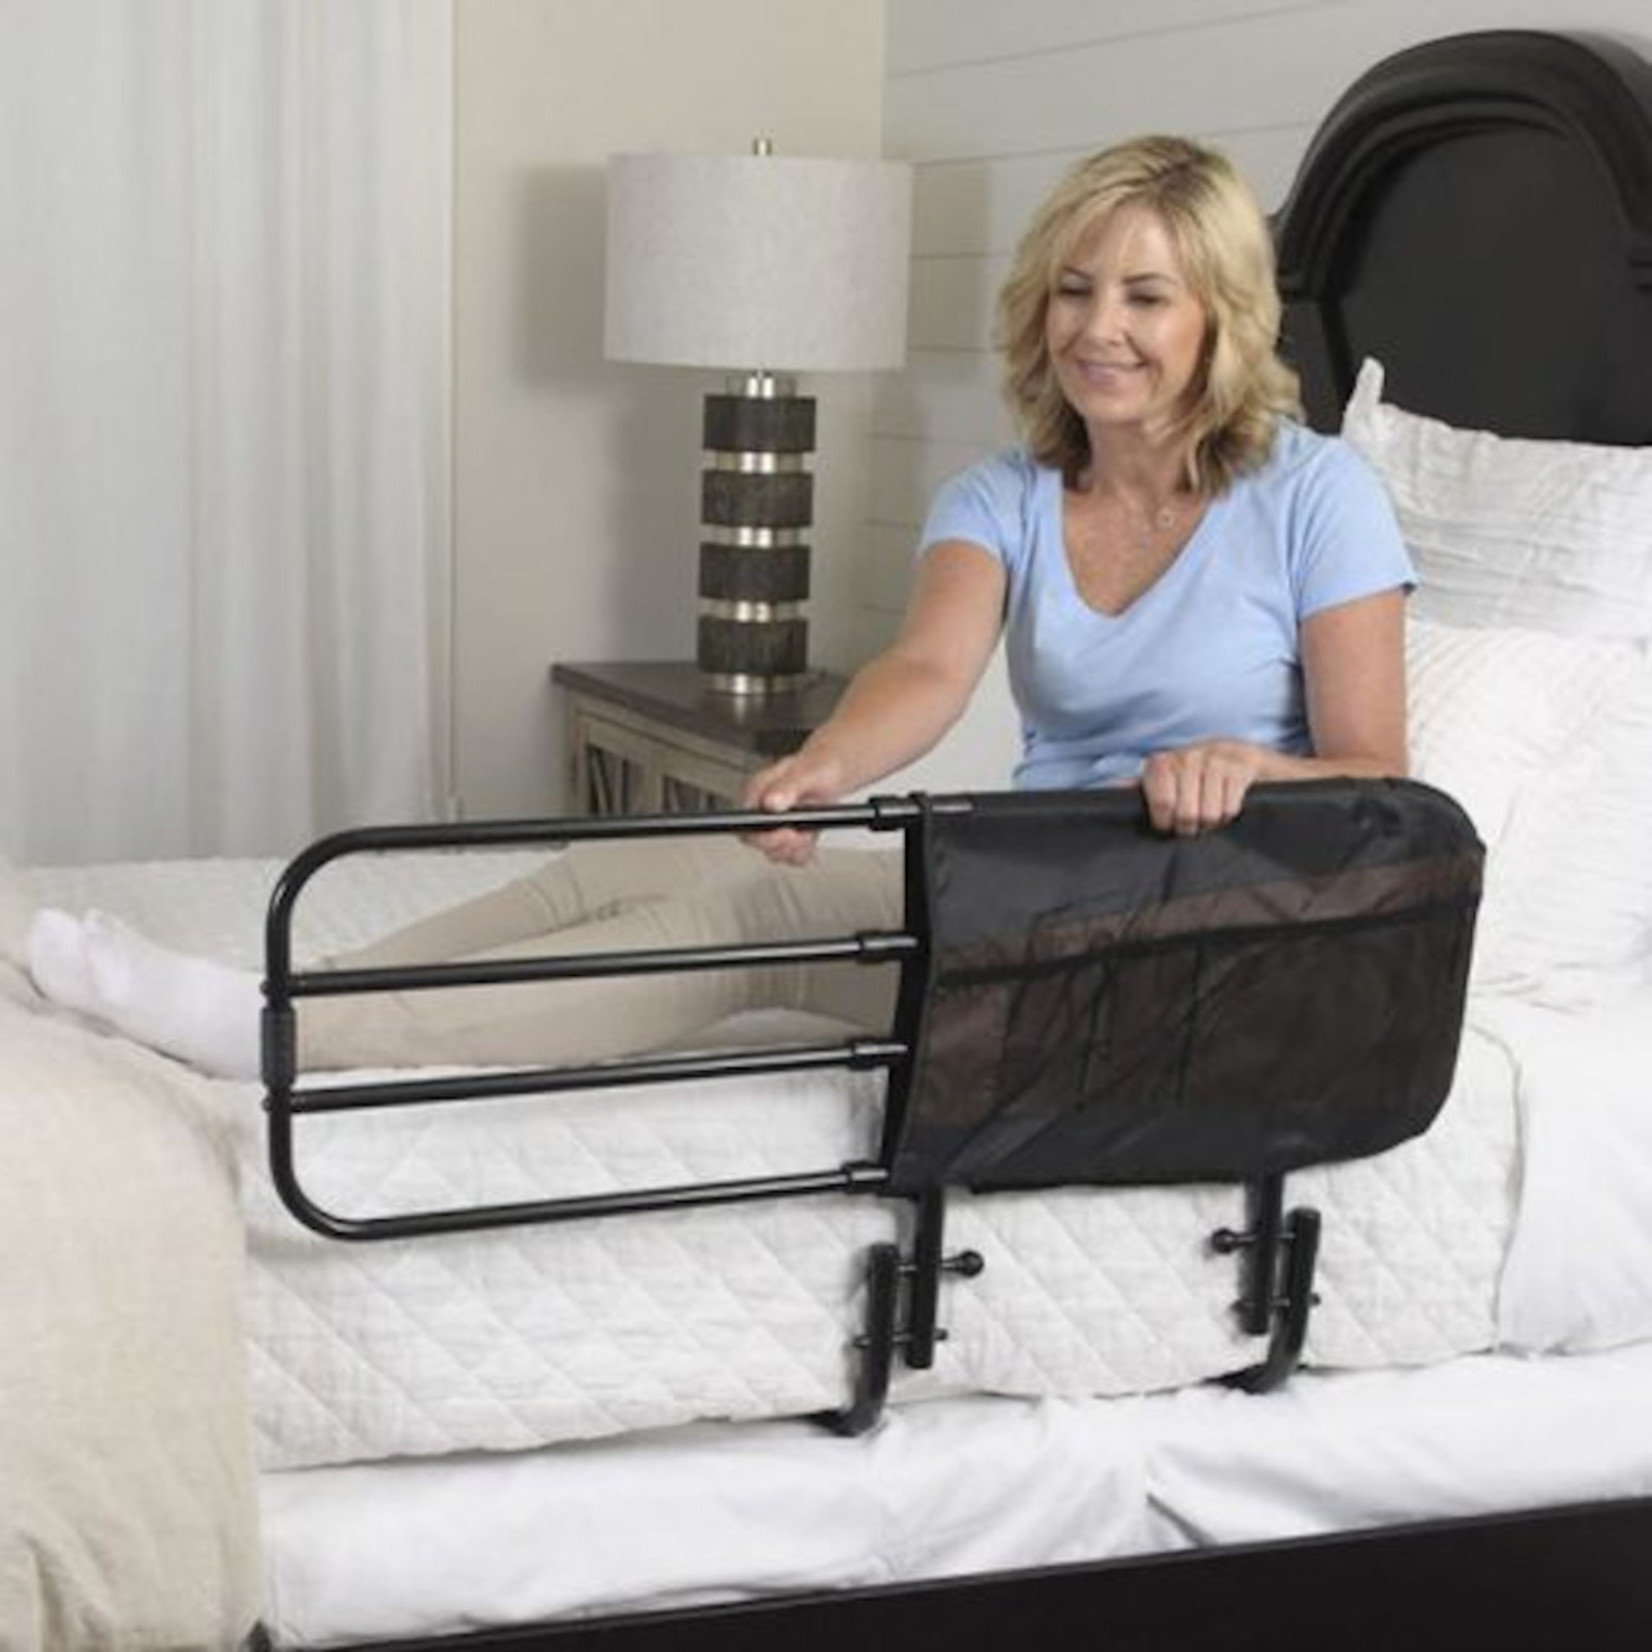 Flamingo Care Products Bed Rail - Adjustable Length